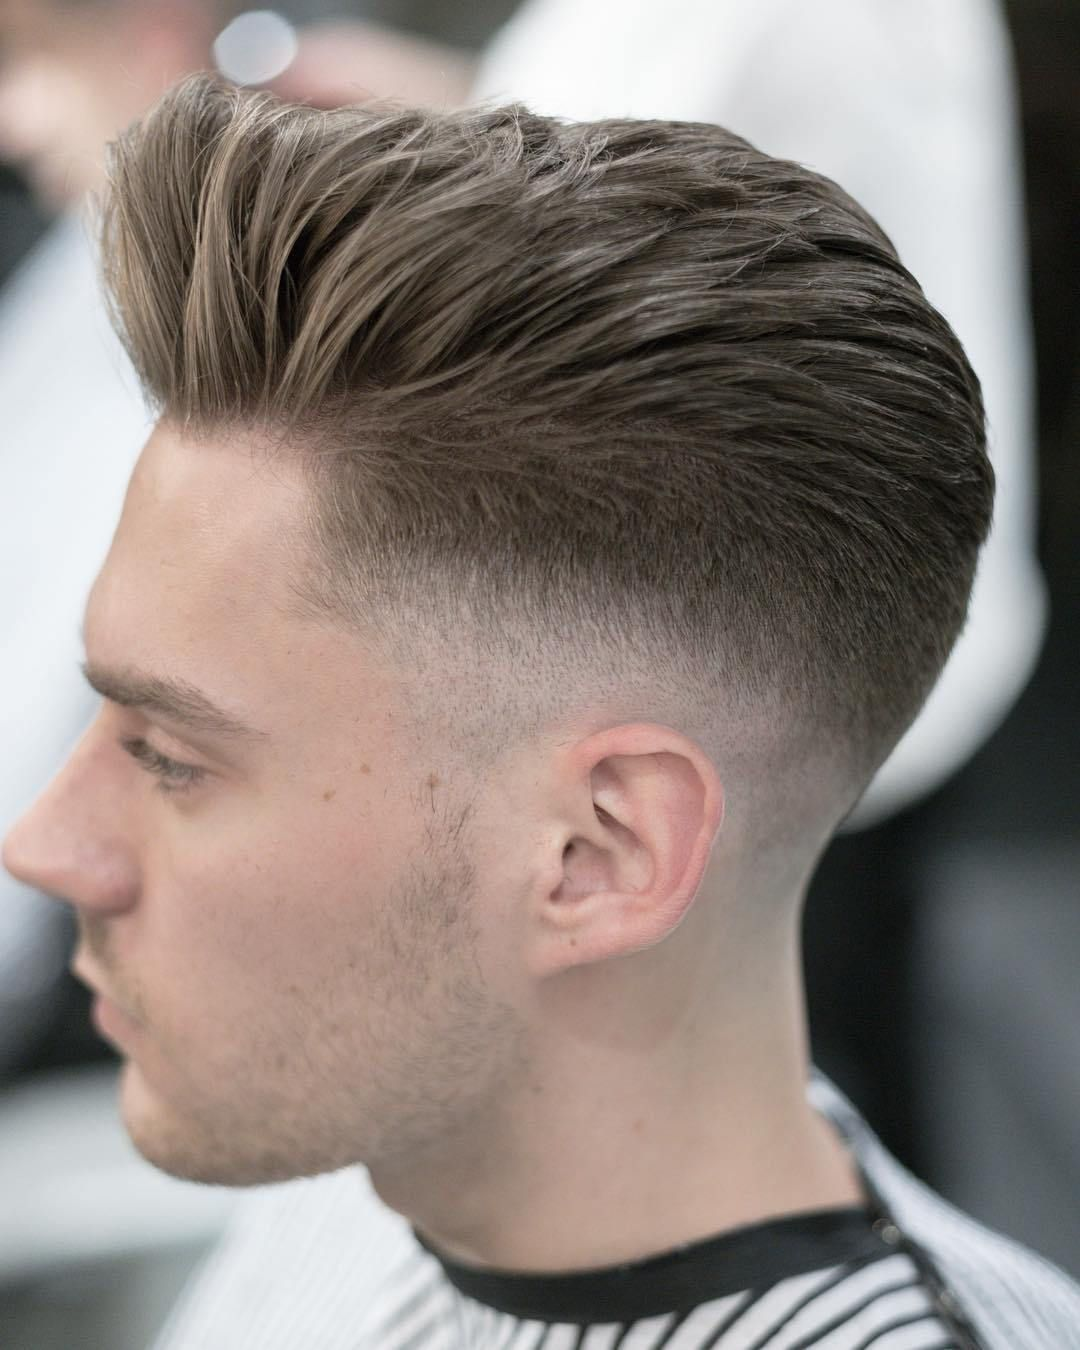 New Degraded Haircuts Man Short Hair 2019 Winter Pompadour Haircut Haircuts For Men Mens Hairstyles Pompadour